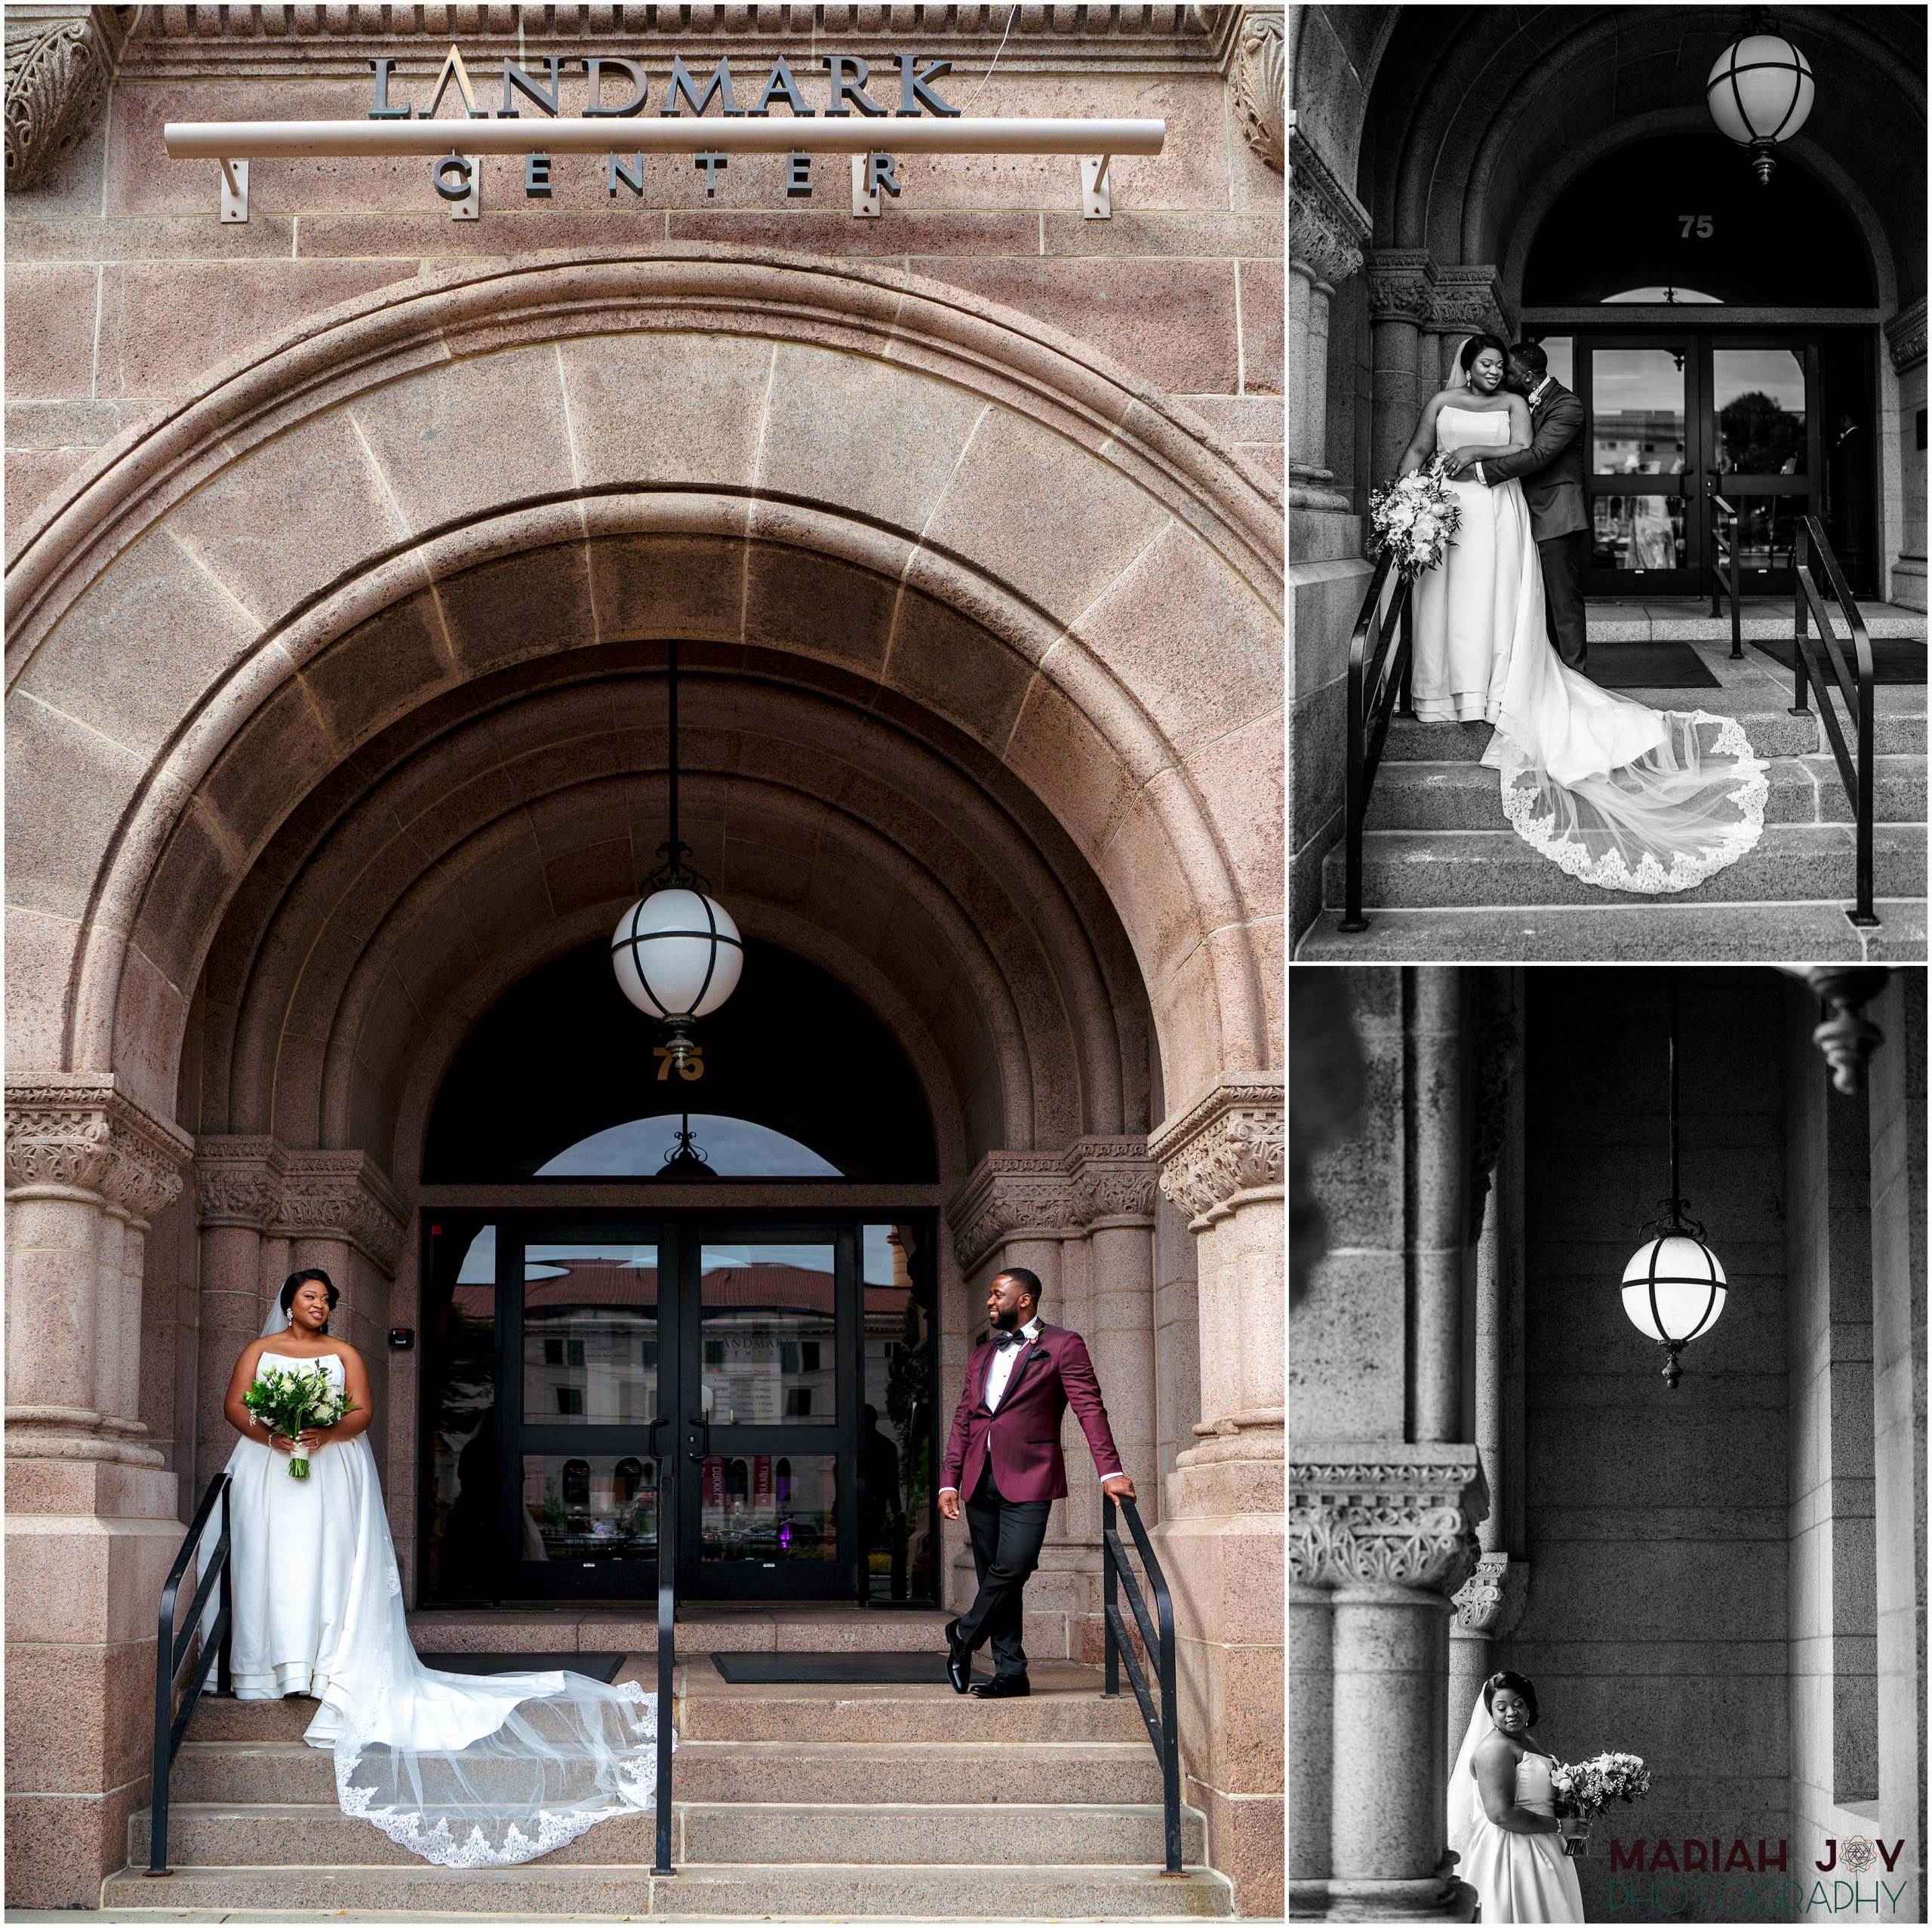 LandmarkCenterWeddingFirstLook-7.jpg